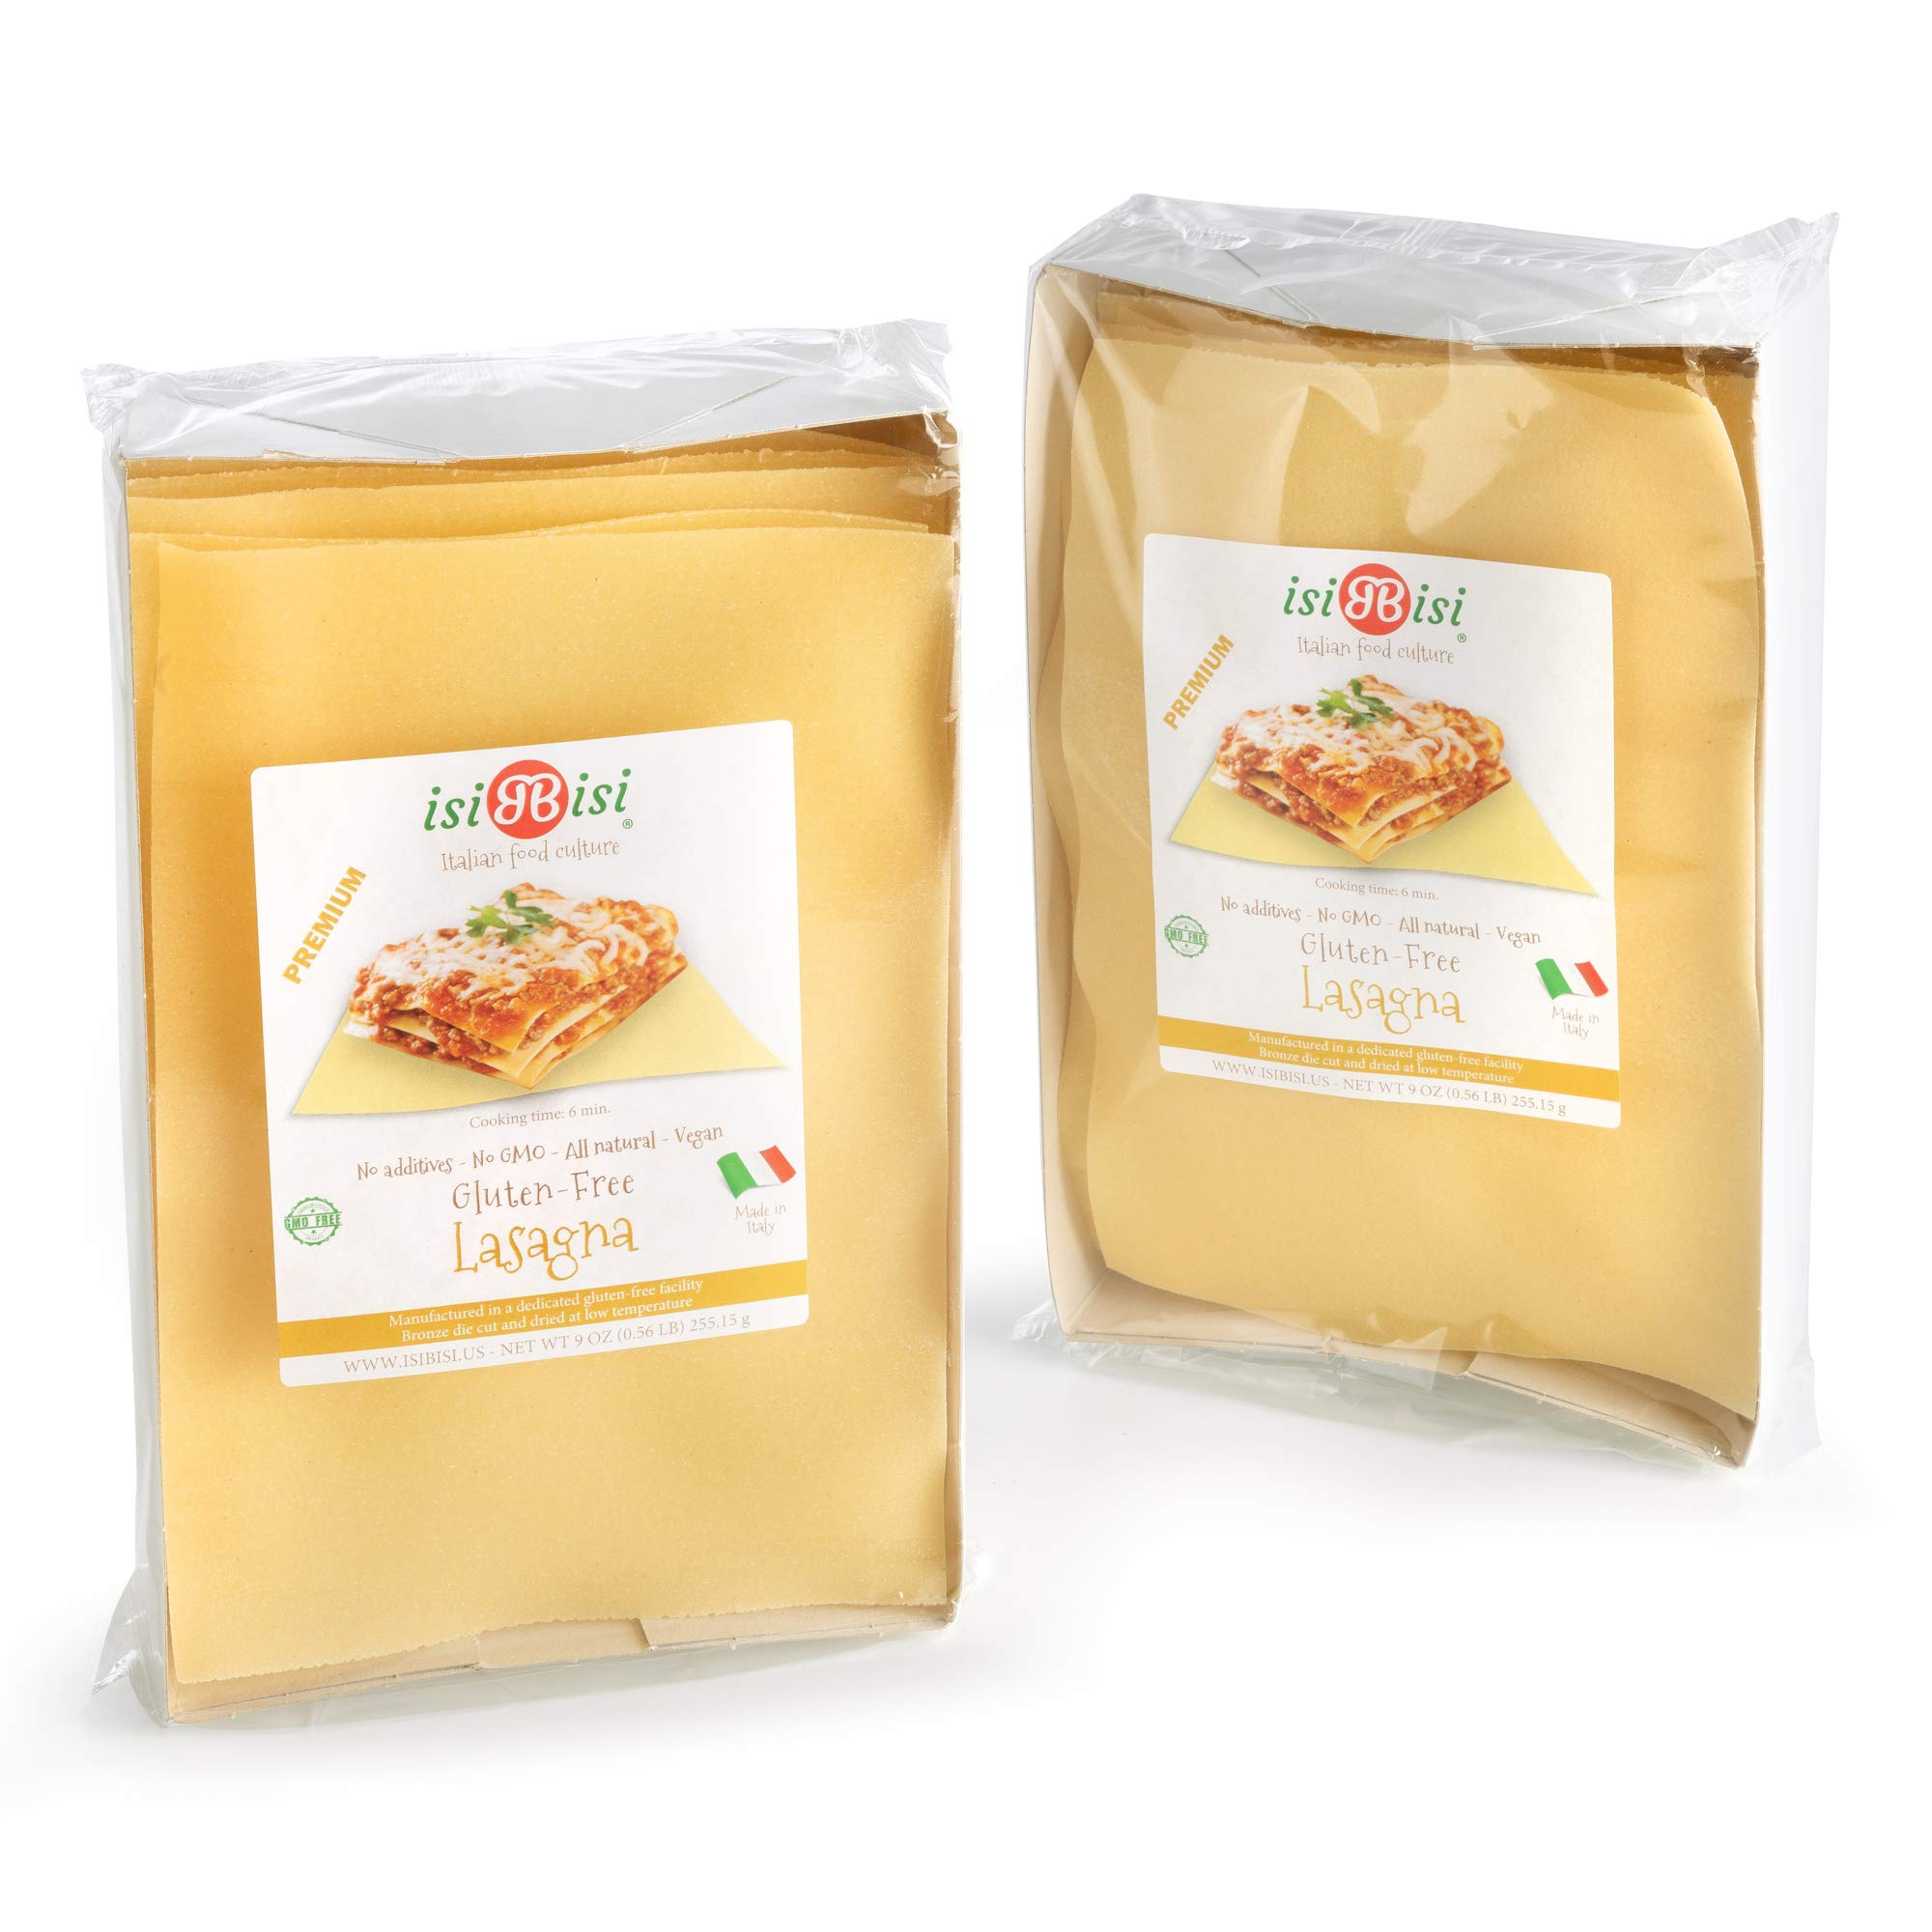 isiBisi Lasagna Gluten Free Pasta - Rice and Corn Flour - Made in Italy (18 oz - 2 Pack) by isiBisi